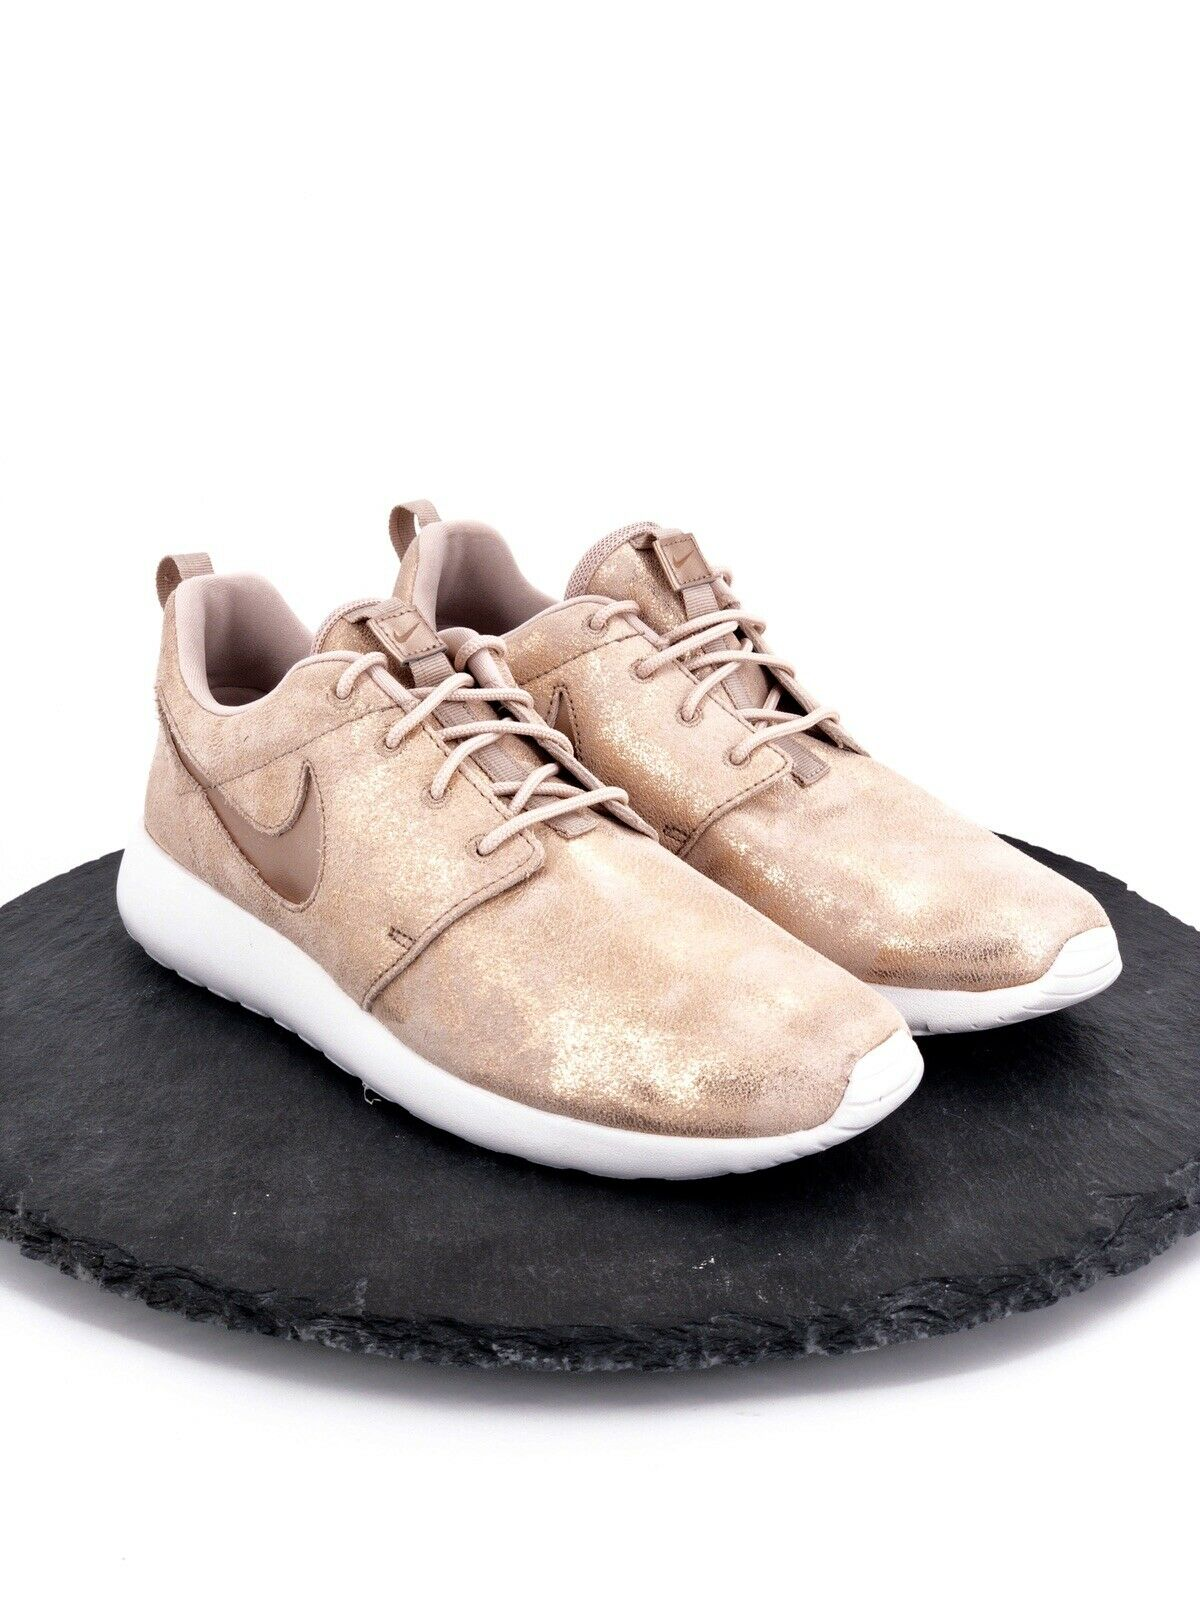 Nike Roshe Run One Premium Metallic Rose Bronze or Rose Chaussure De Course Taille 9